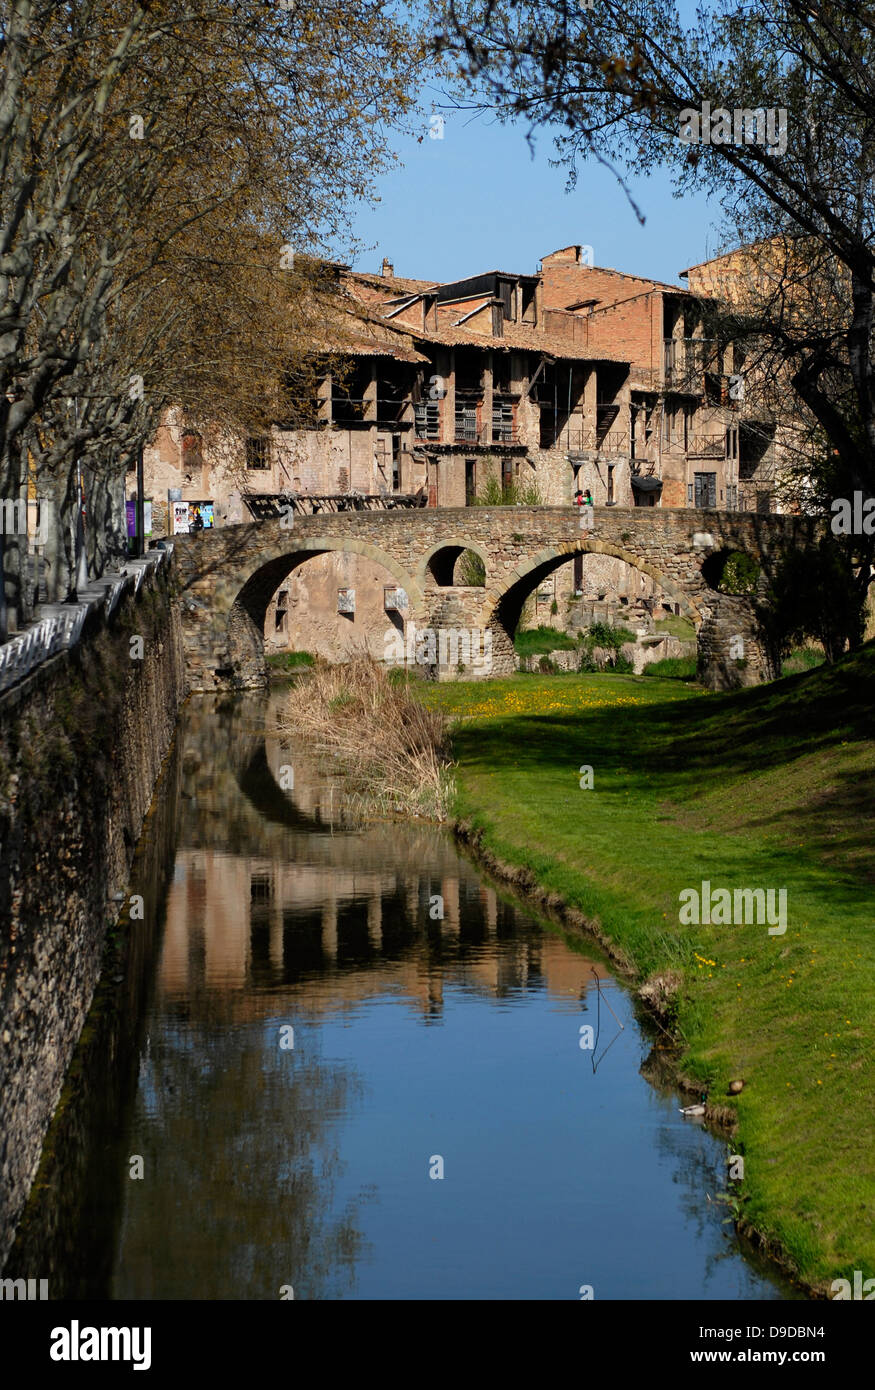 River,  Meder, Bridge, Old, Ancient, Queralt, Romanesque, adoberies,  Vic, Osona, Barcelona, Catalonia, Spain, Europe - Stock Image